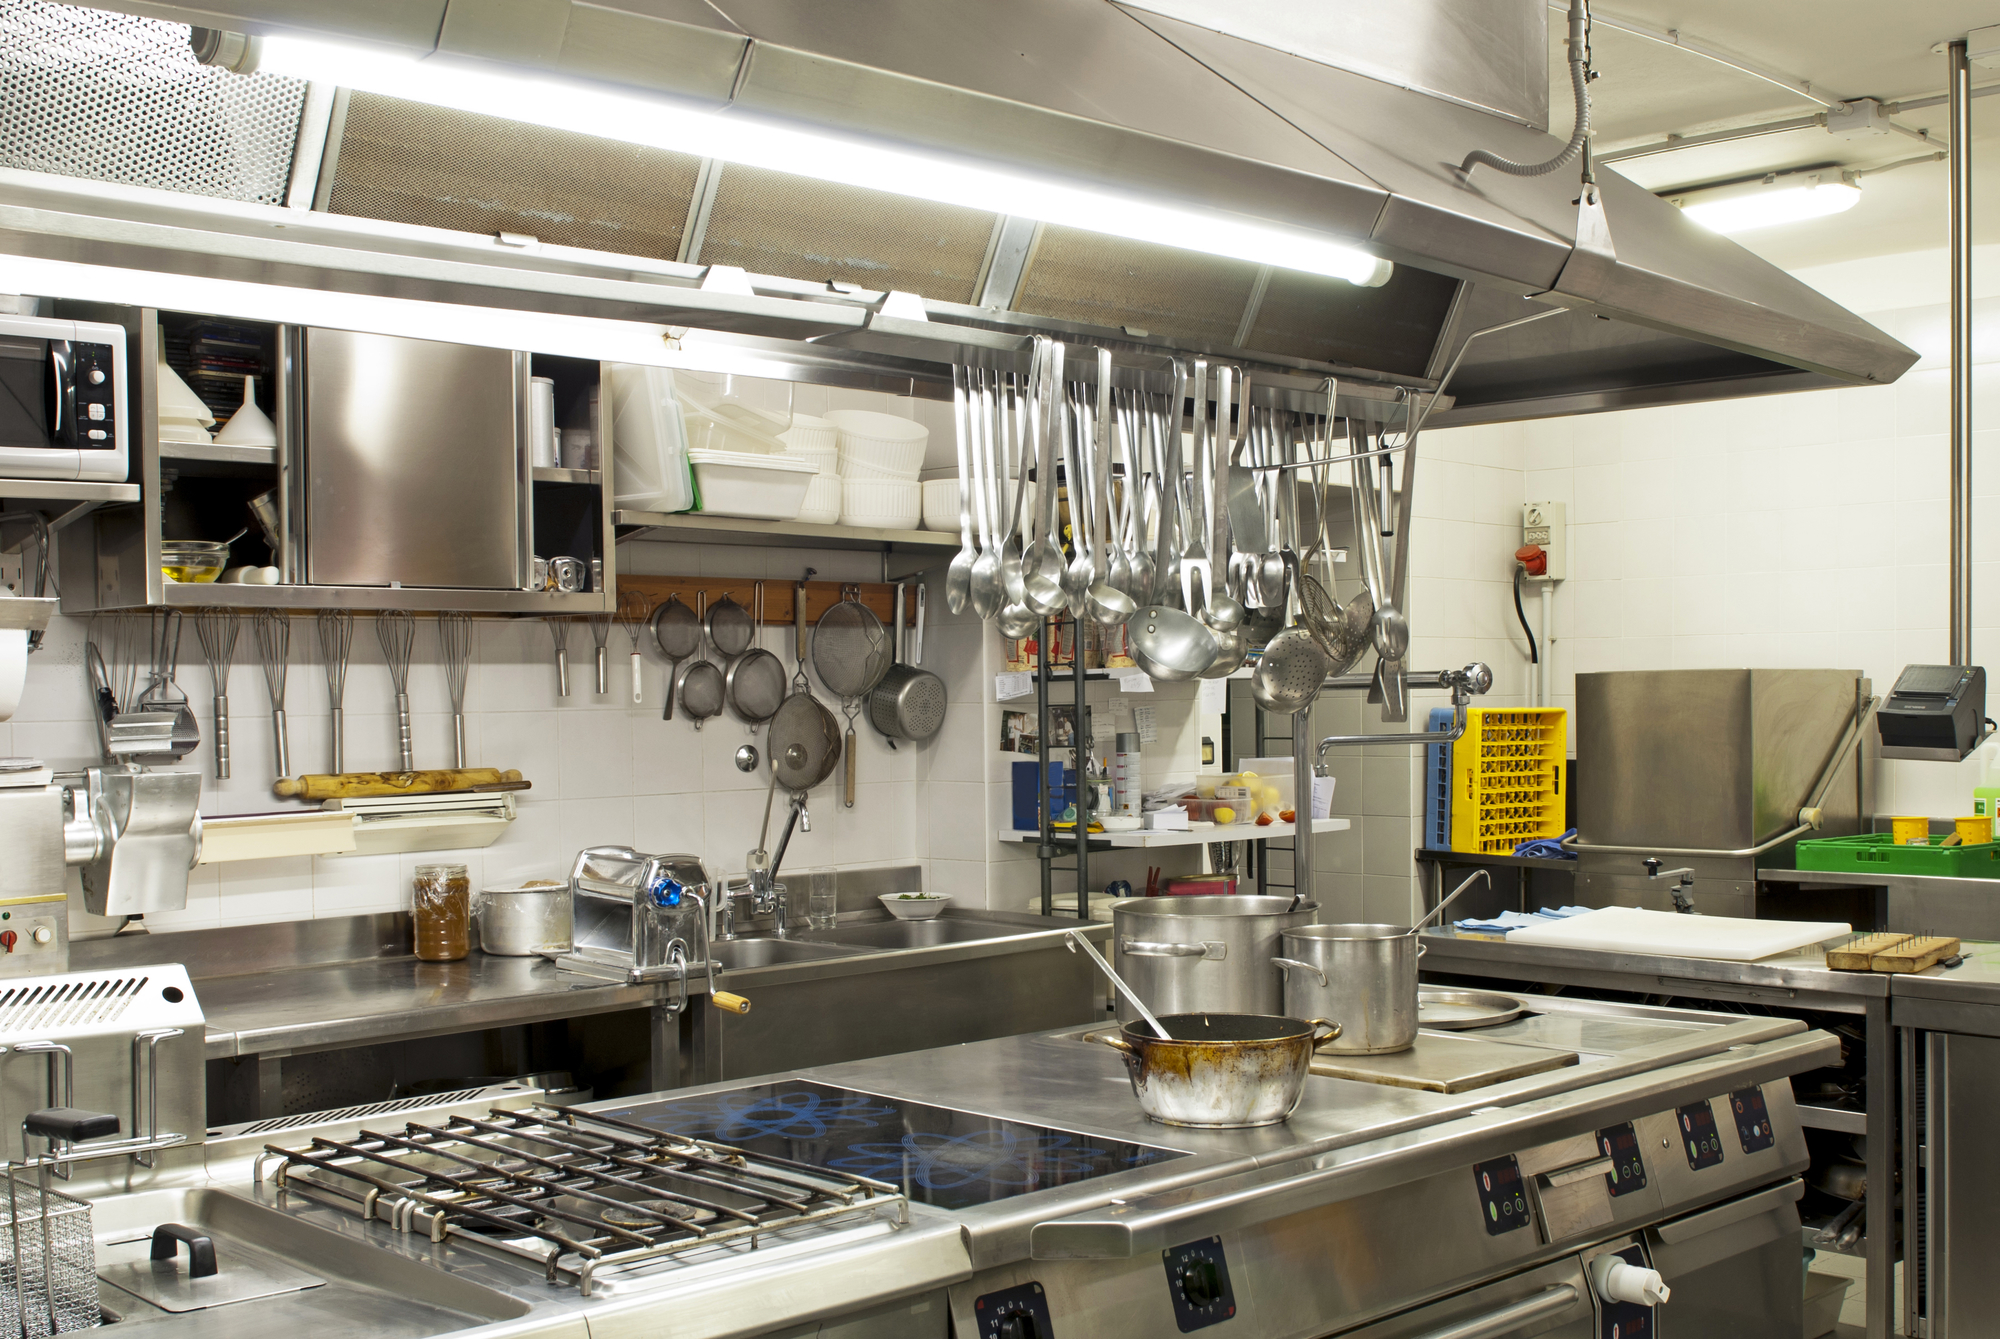 Utensils For Commercial Kitchen